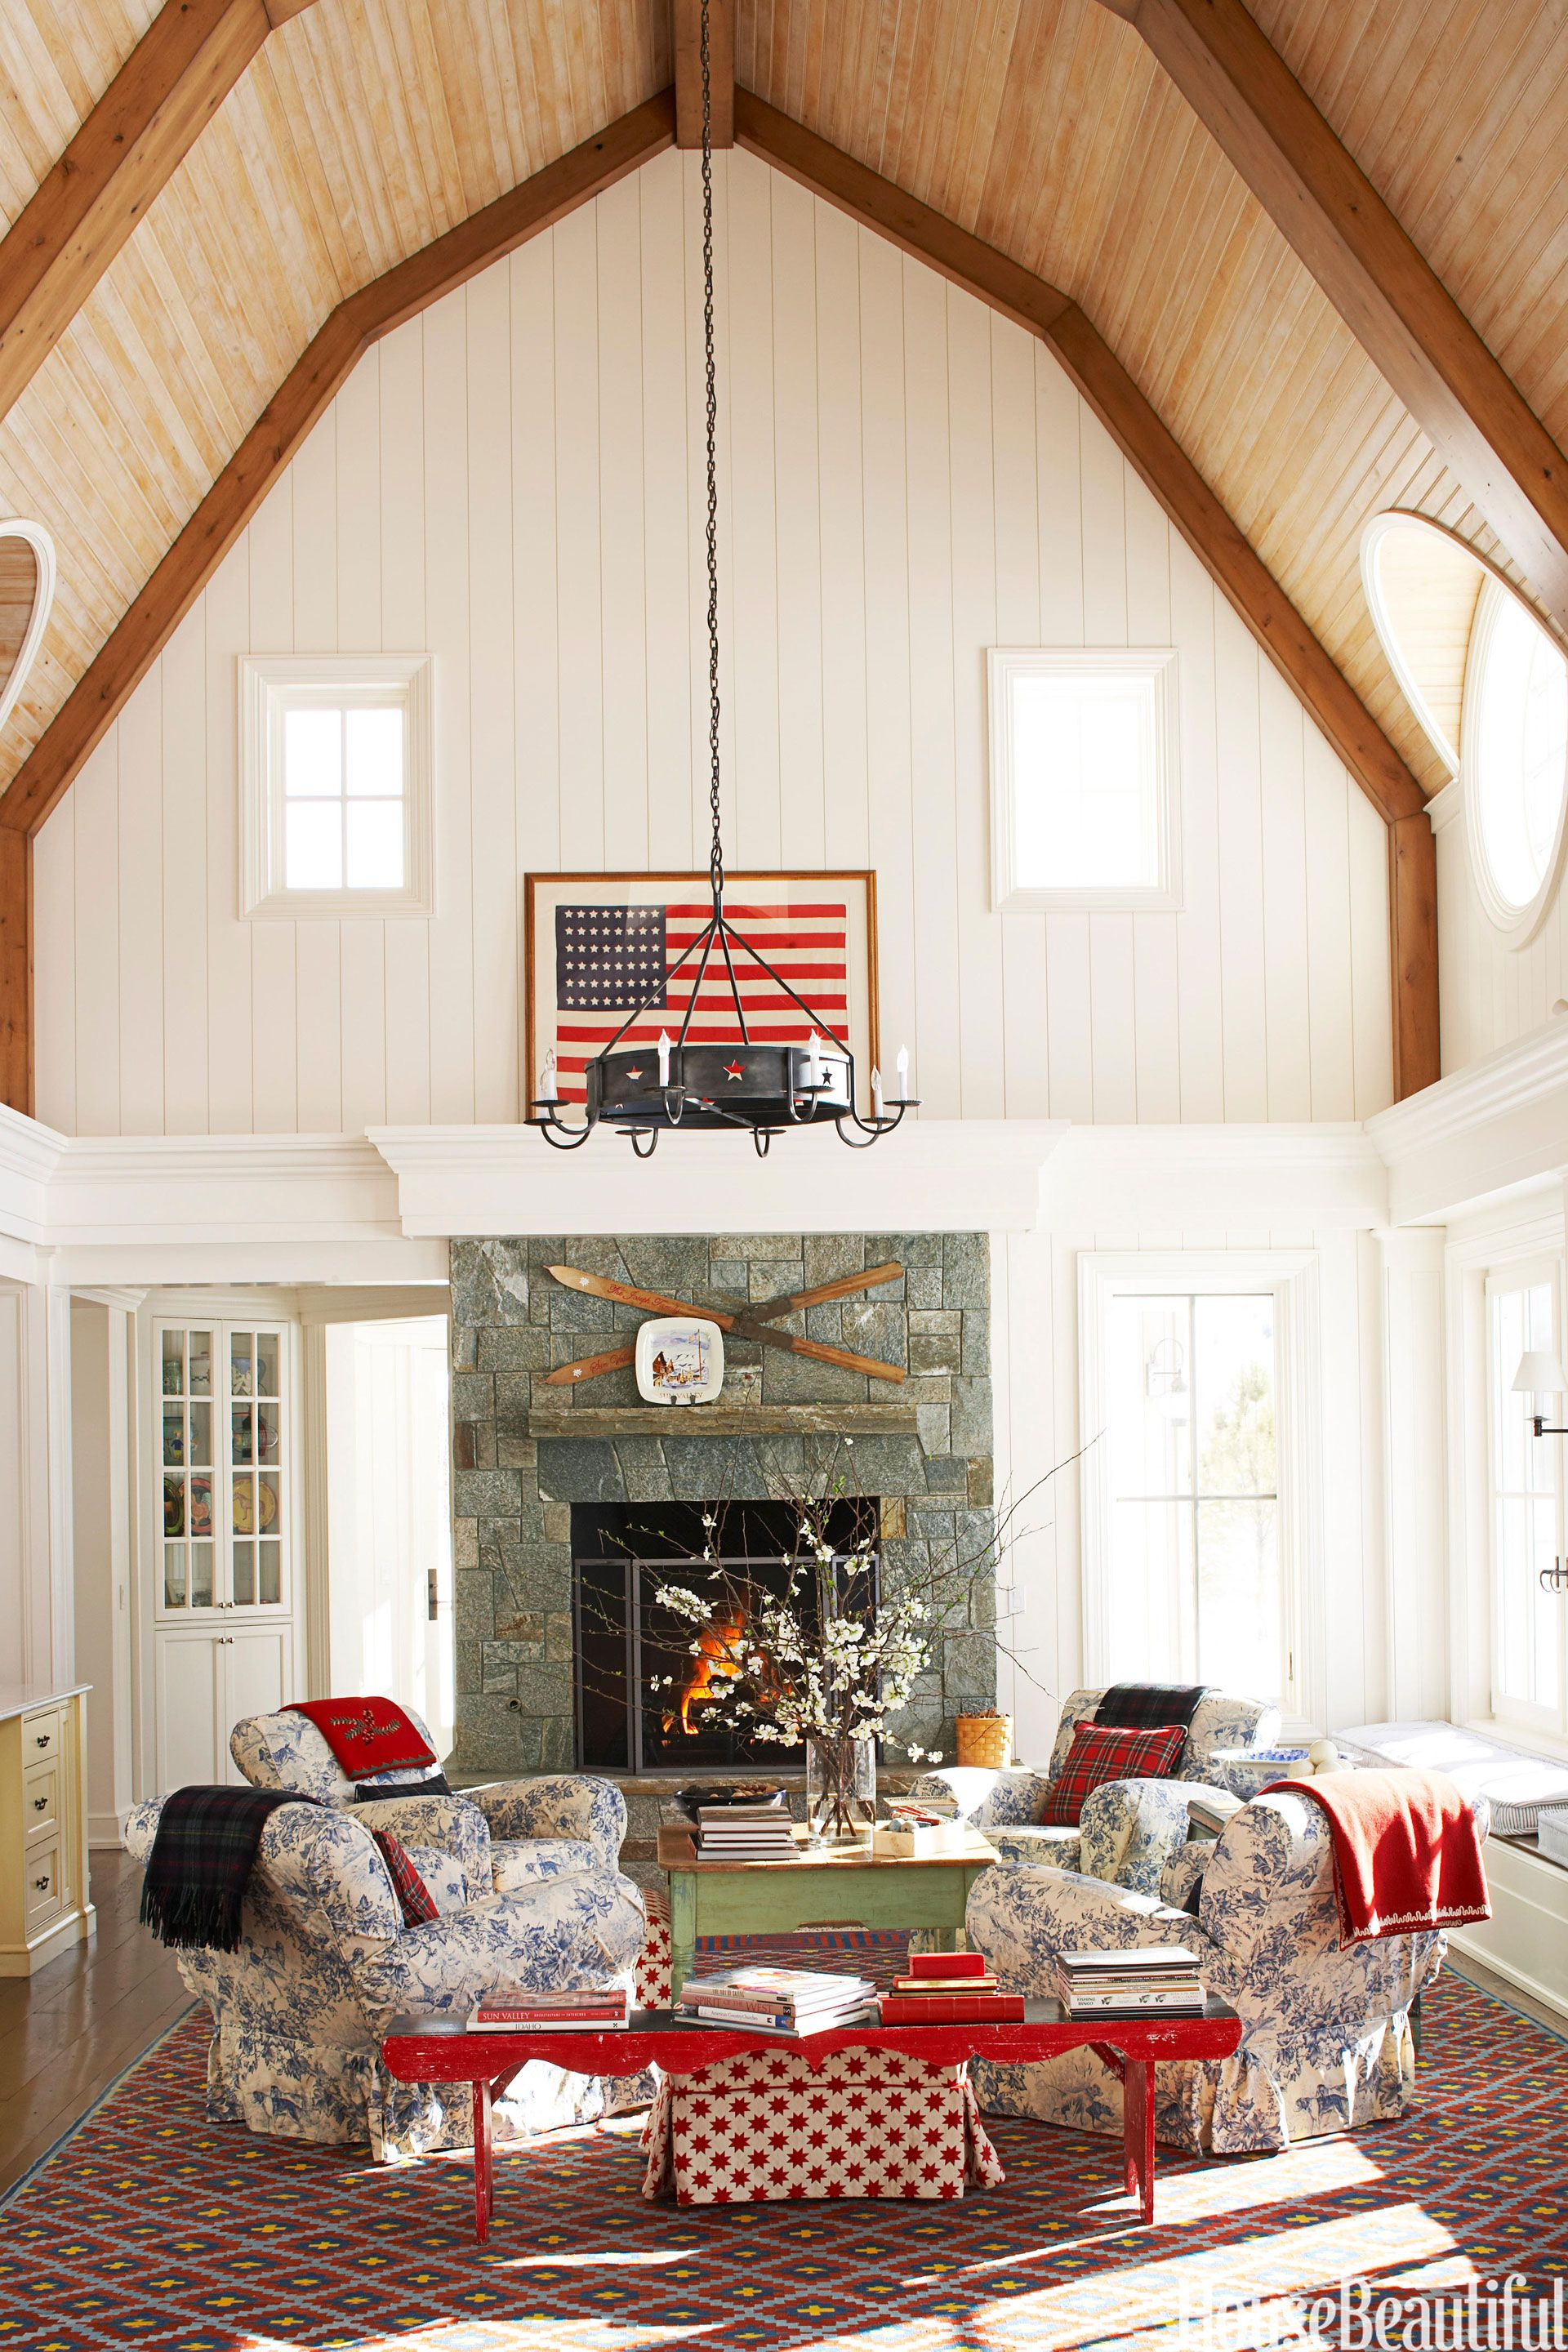 12 Signs You Live in an All-American Home